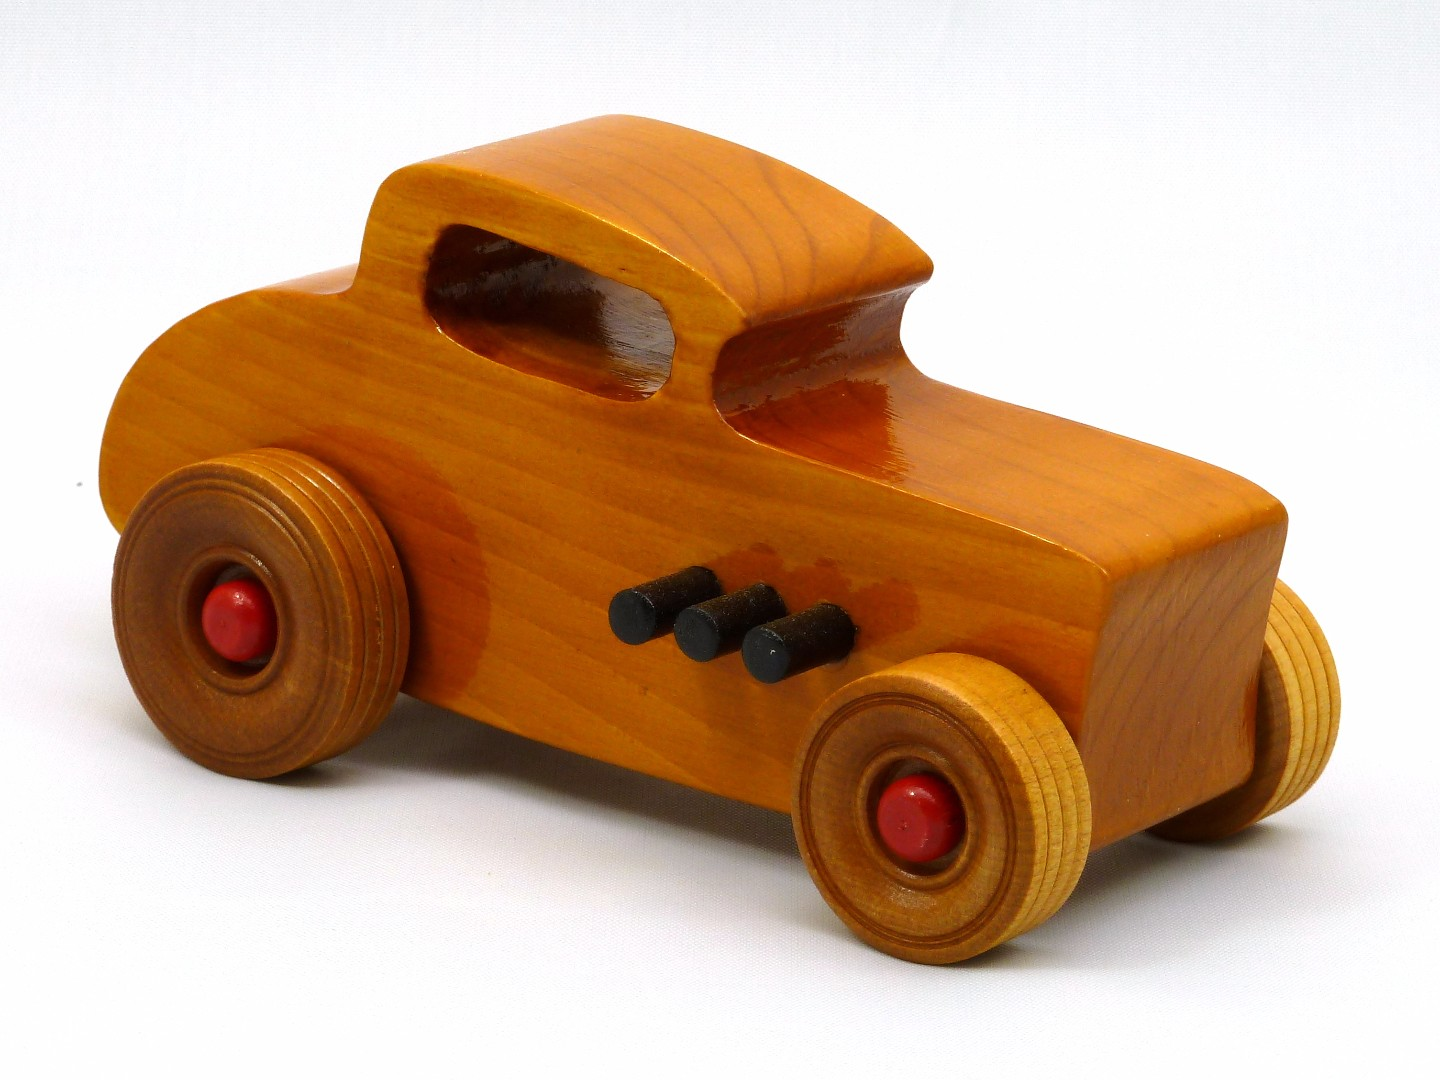 20170902-171902 Wooden Toy Car - Hot Rod Freaky Ford - 32 Deuce Coupe - Pine - Amber Shellac - Red.jpg